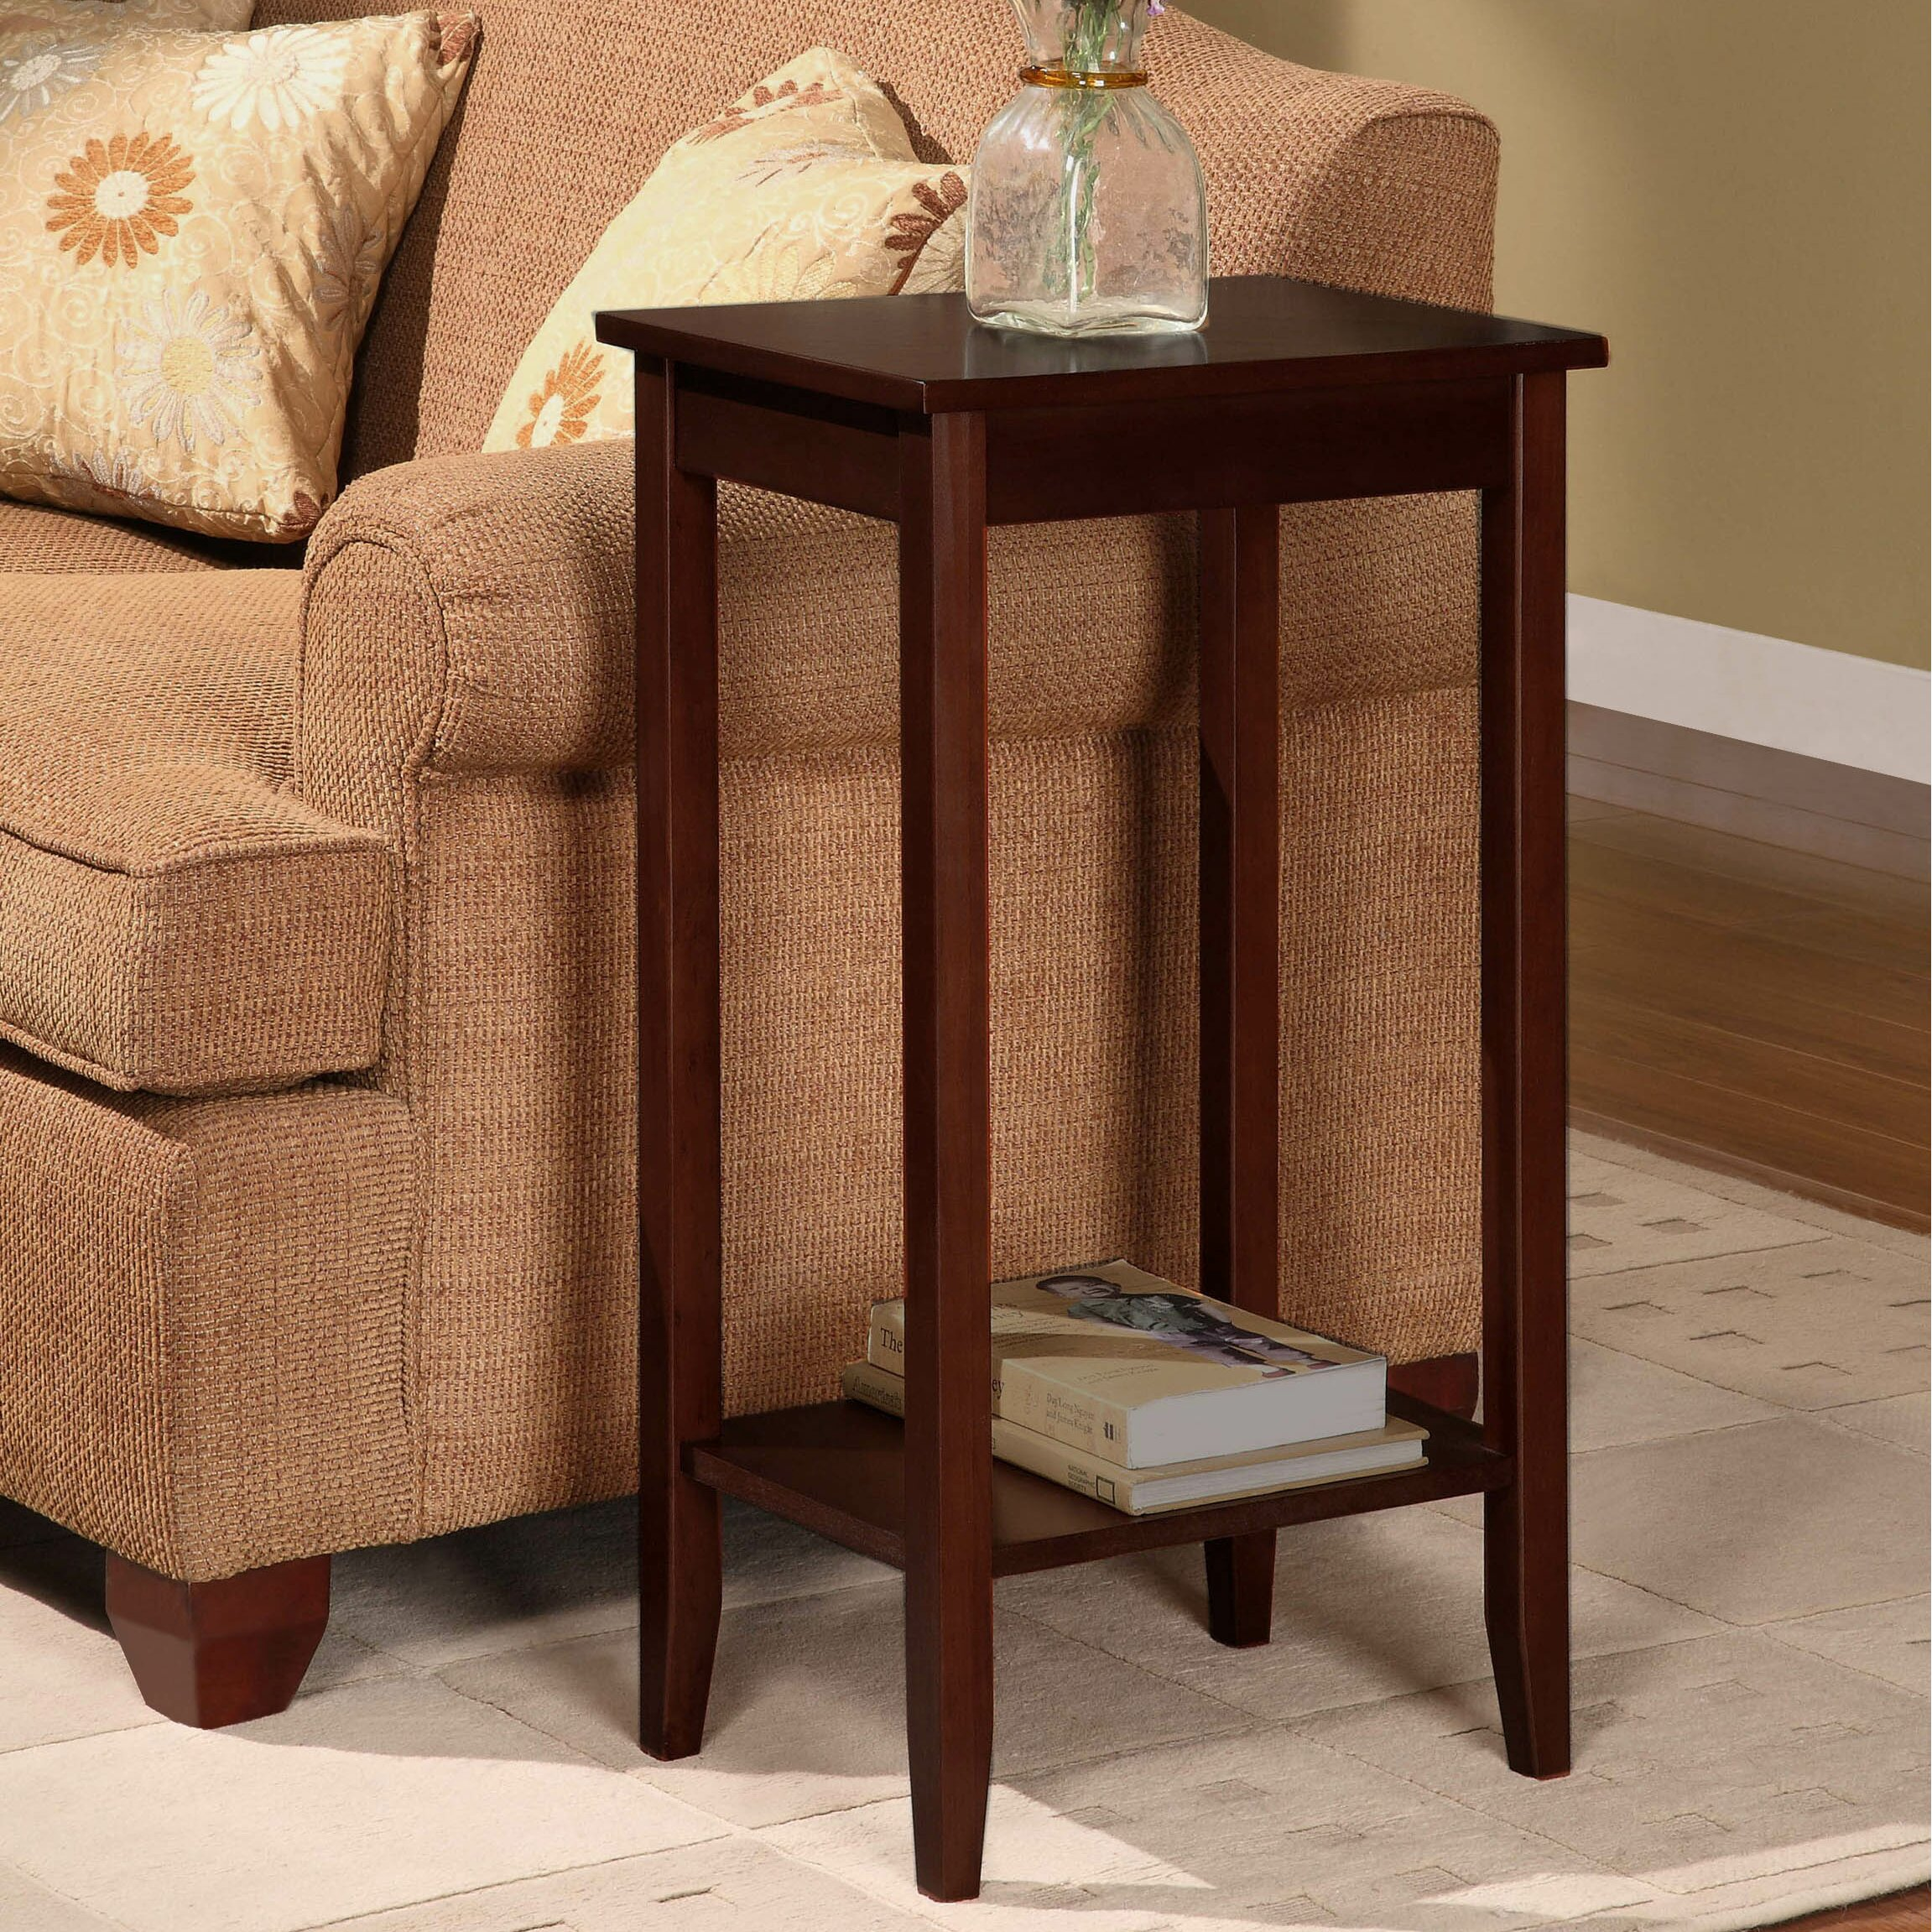 dhp rosewood tall end table reviews wayfair. Black Bedroom Furniture Sets. Home Design Ideas